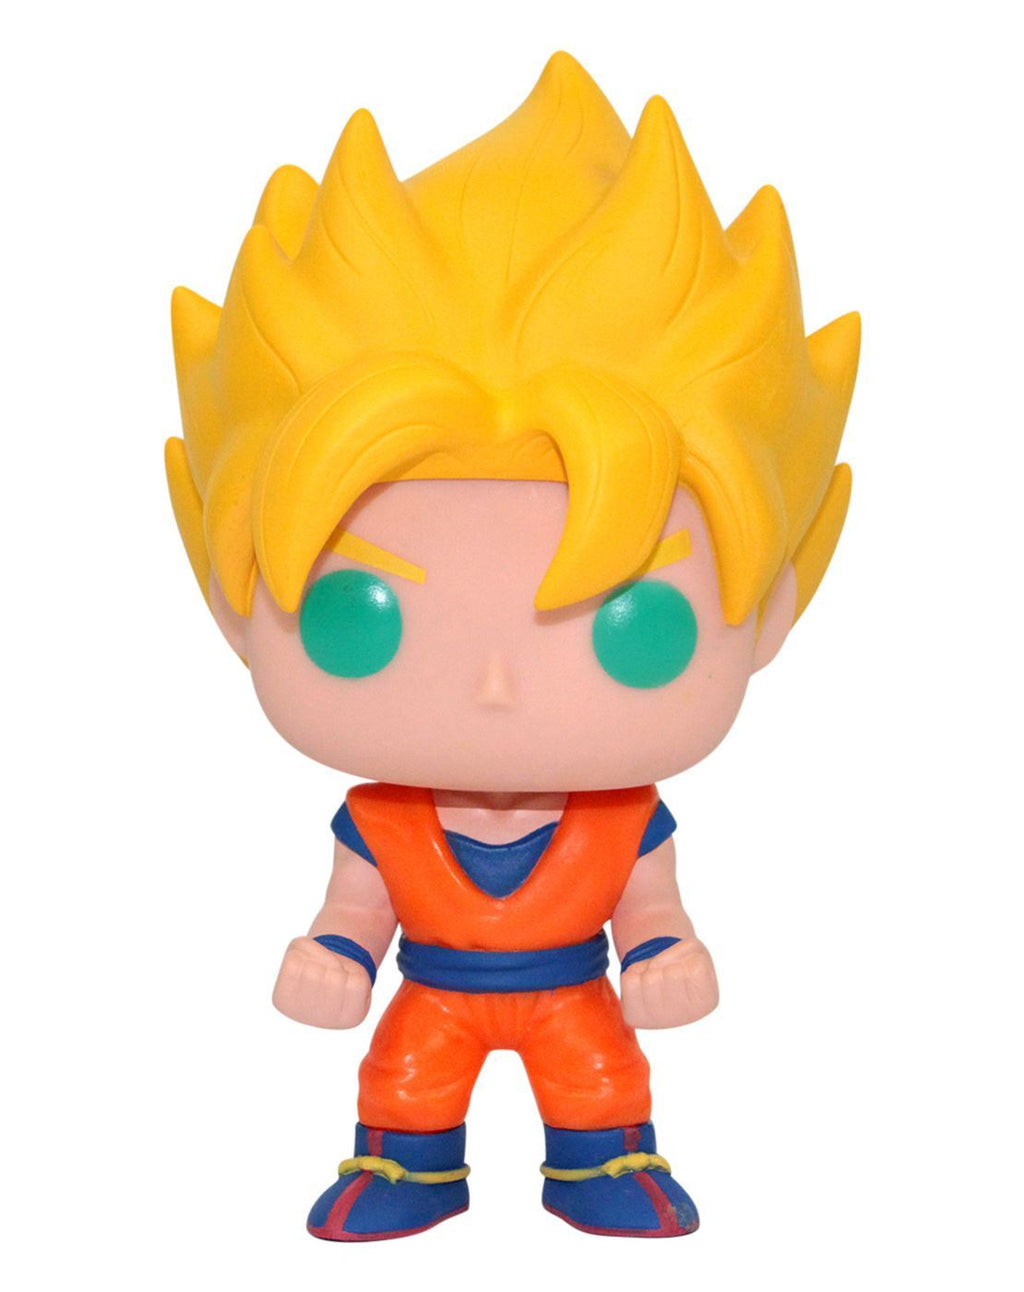 Funko Pop! Dragon Ball Z Glow In The Dark Super Saiyan Goku Vinyl Figure